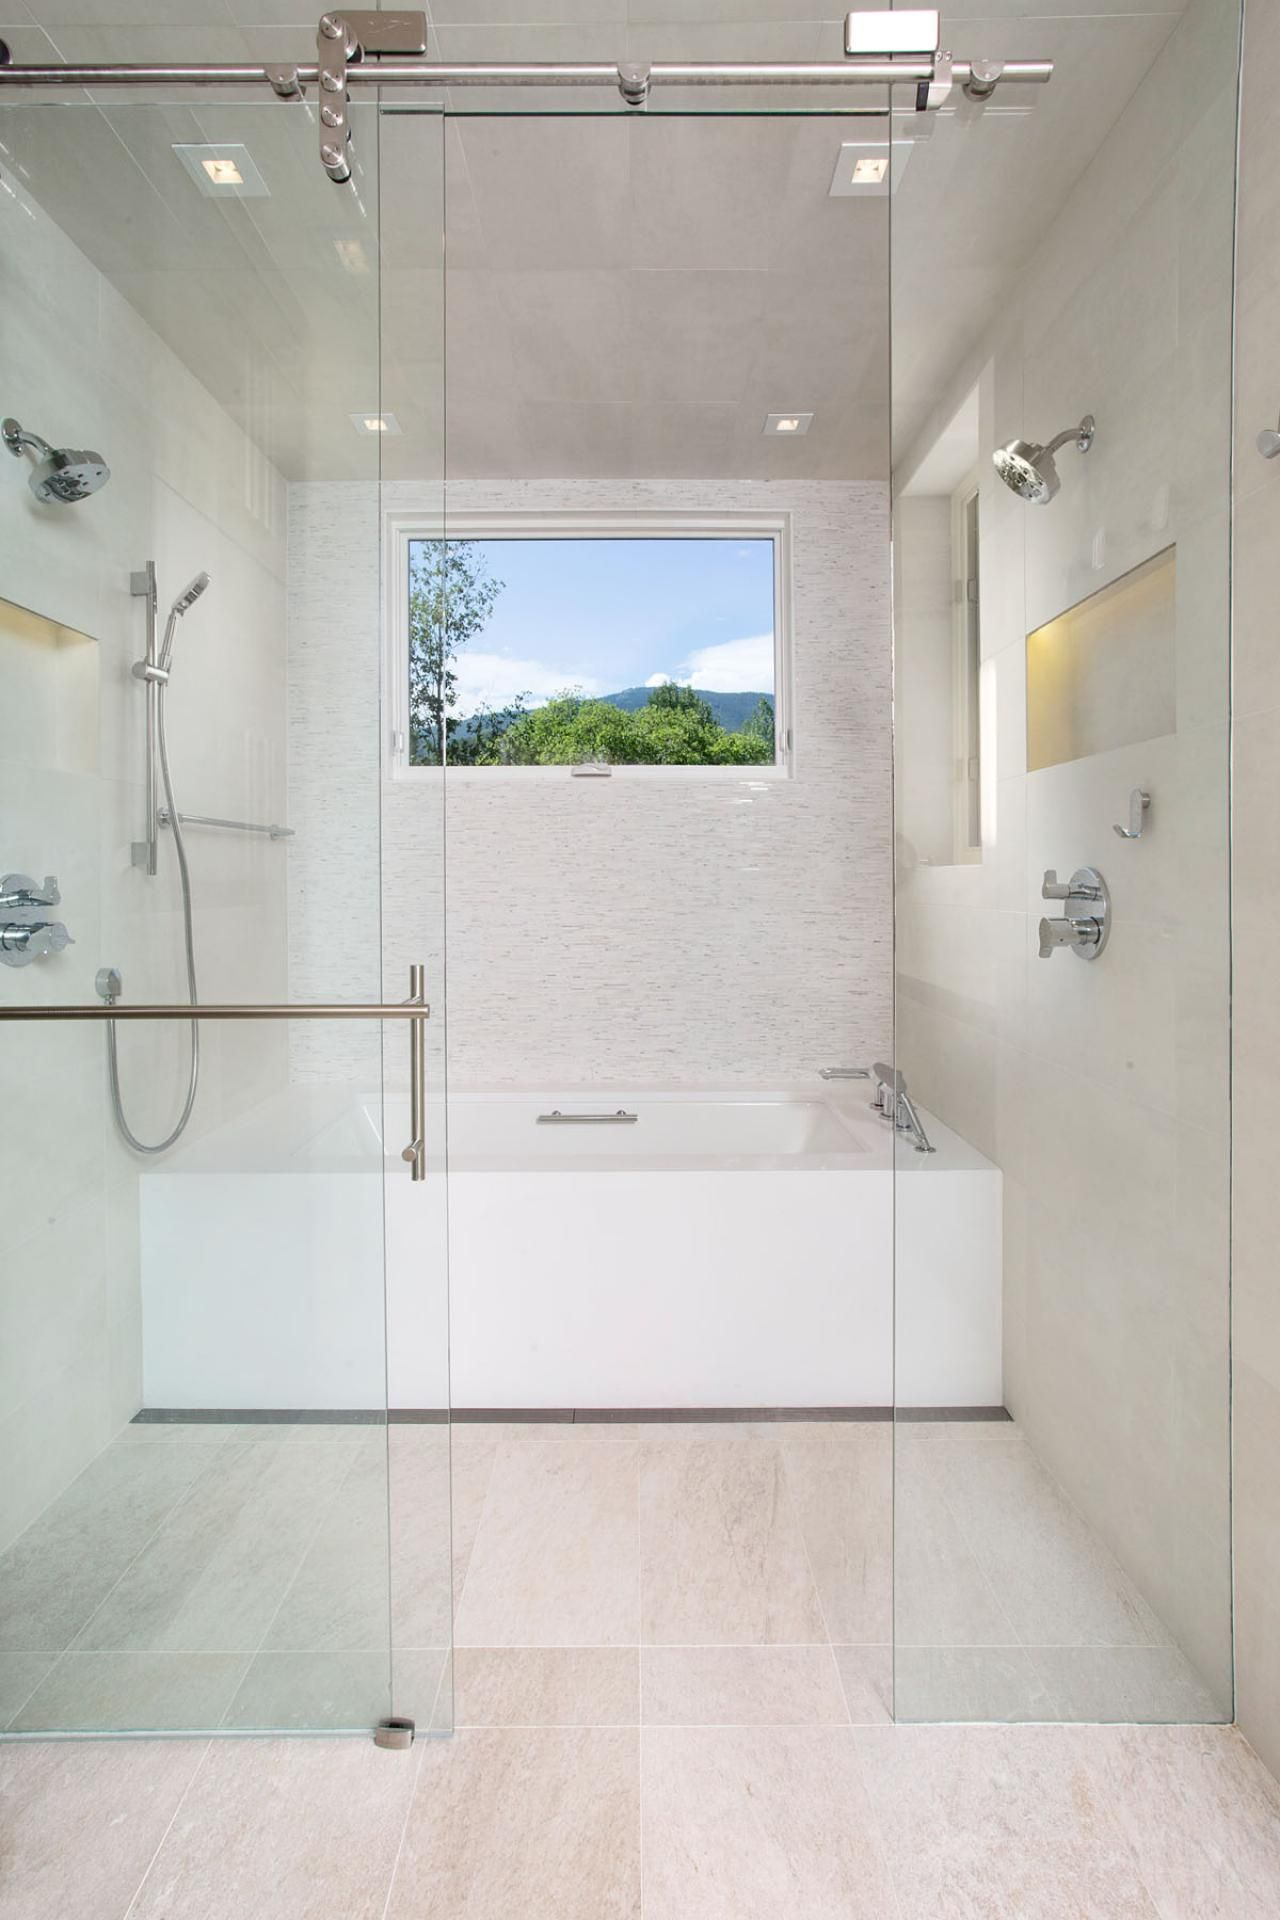 Small Bathroom Designs With Separate Shower And Tub this contemporary bathroom incorporates a wet room area with a no